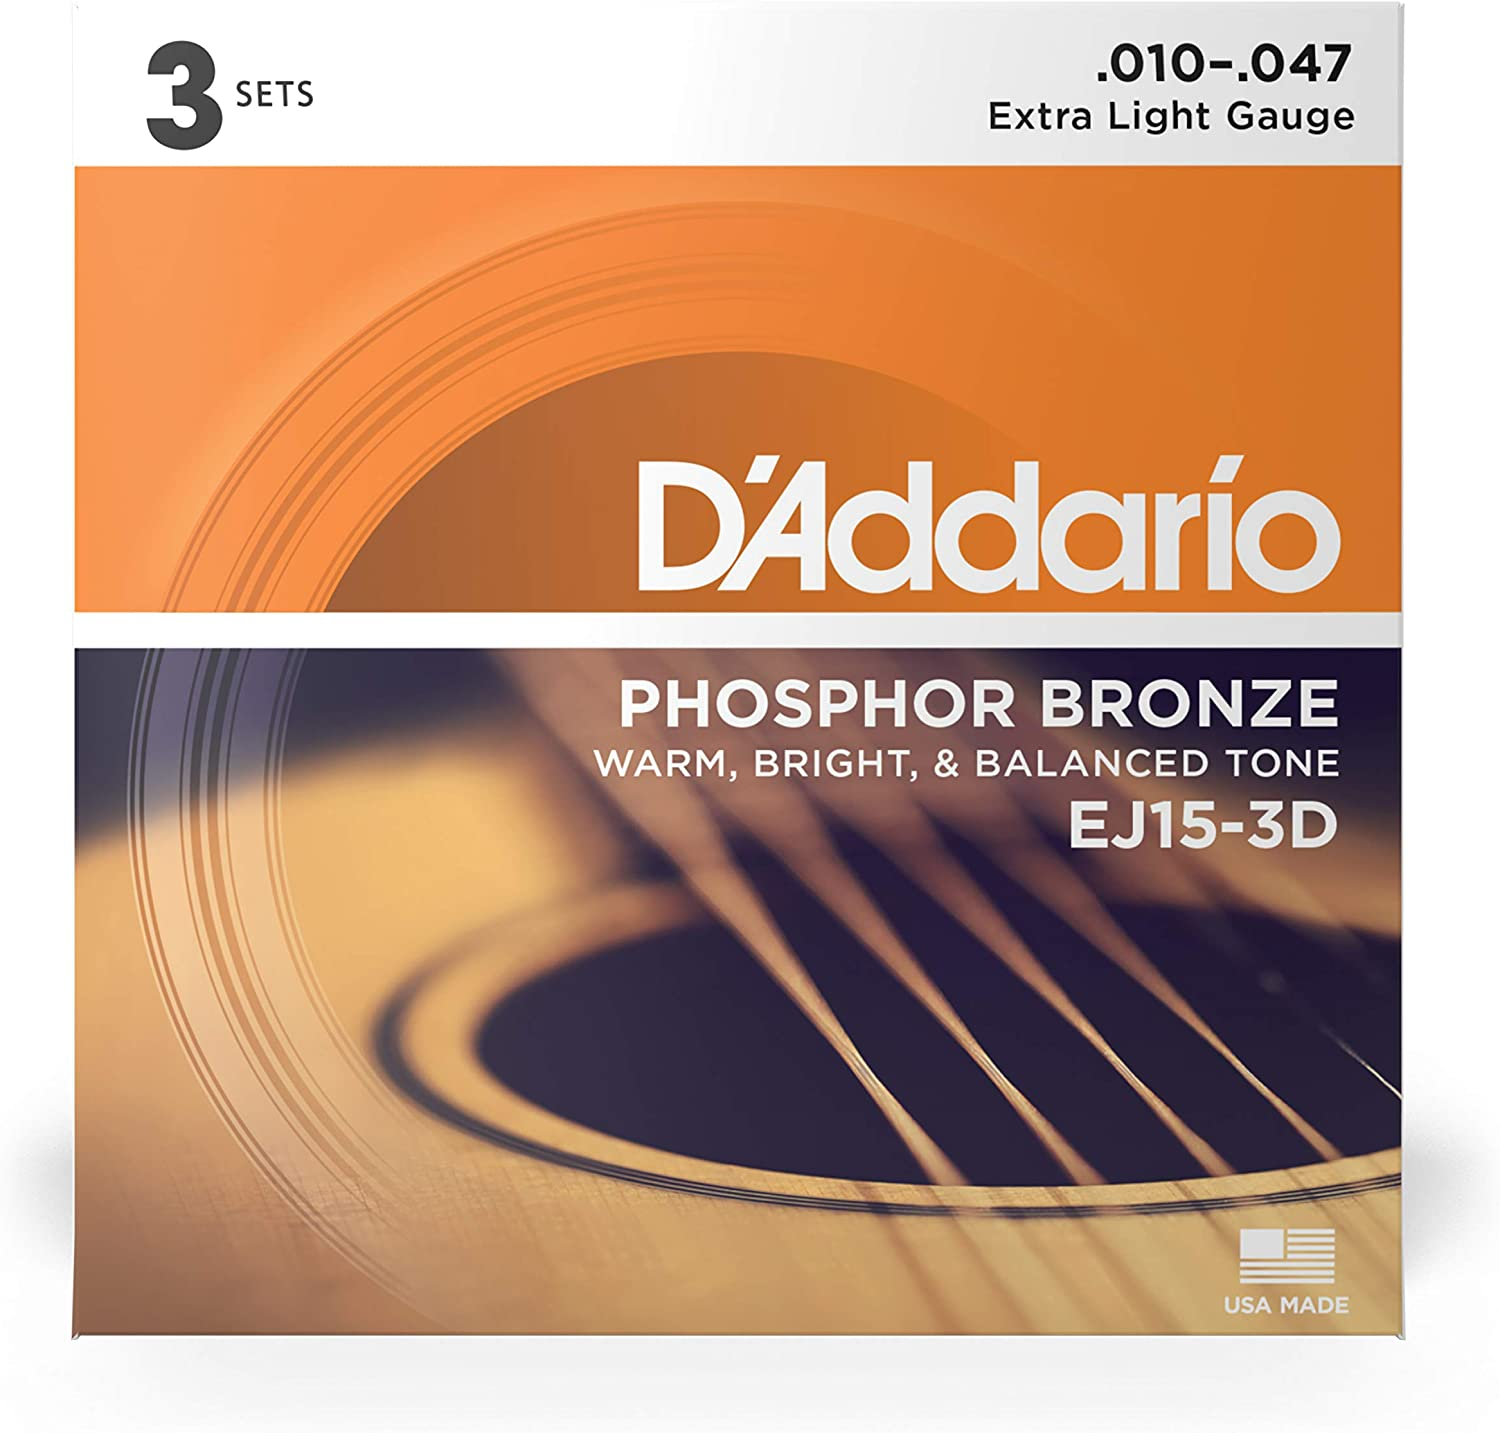 D/'addario 3 Sets EJ15 Extra Light Acoustic Guitar Strings EJ 15 3D Pack 10-47